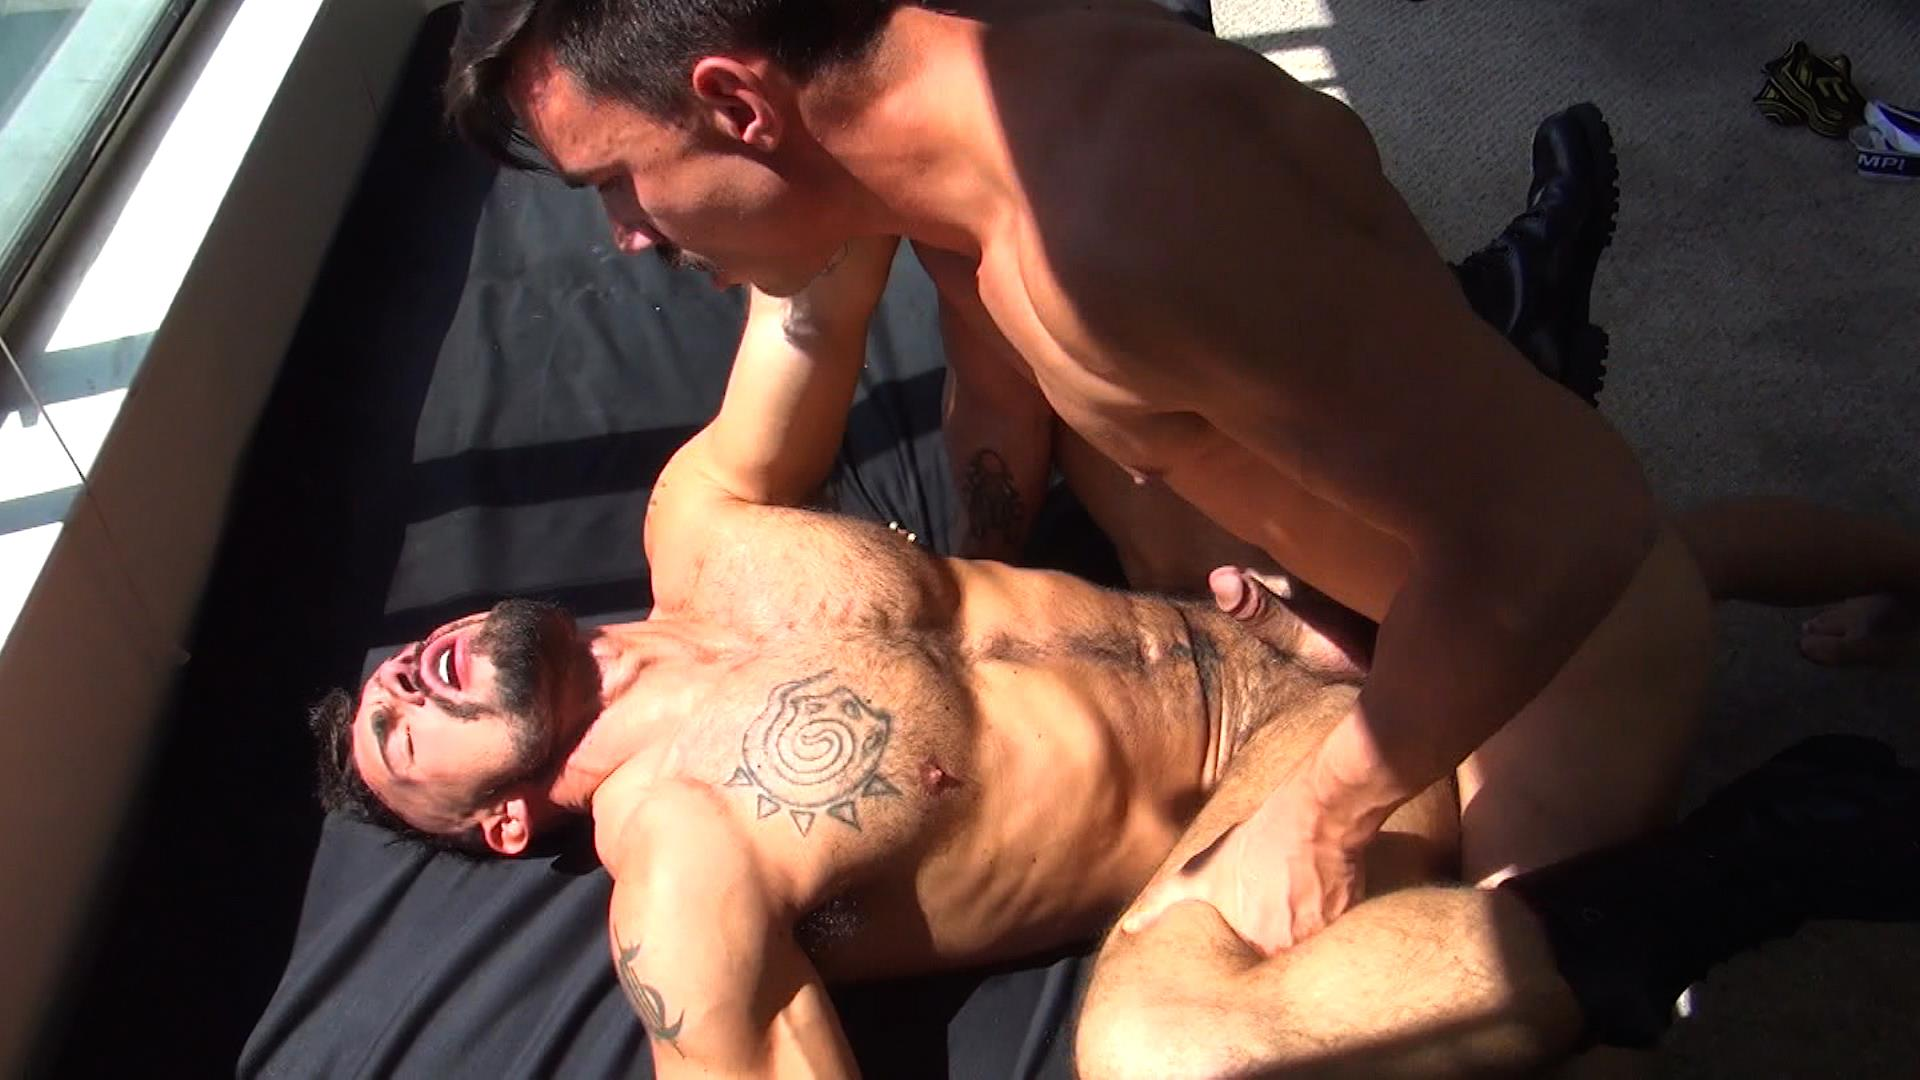 Raw Fuck Club Derrick Hanson and Aarin Asker and Billy Warren and Adam Avery Amateur Gay Porn 03 Group Sex Bareback Fucking At The Folsom Street Fair 2015